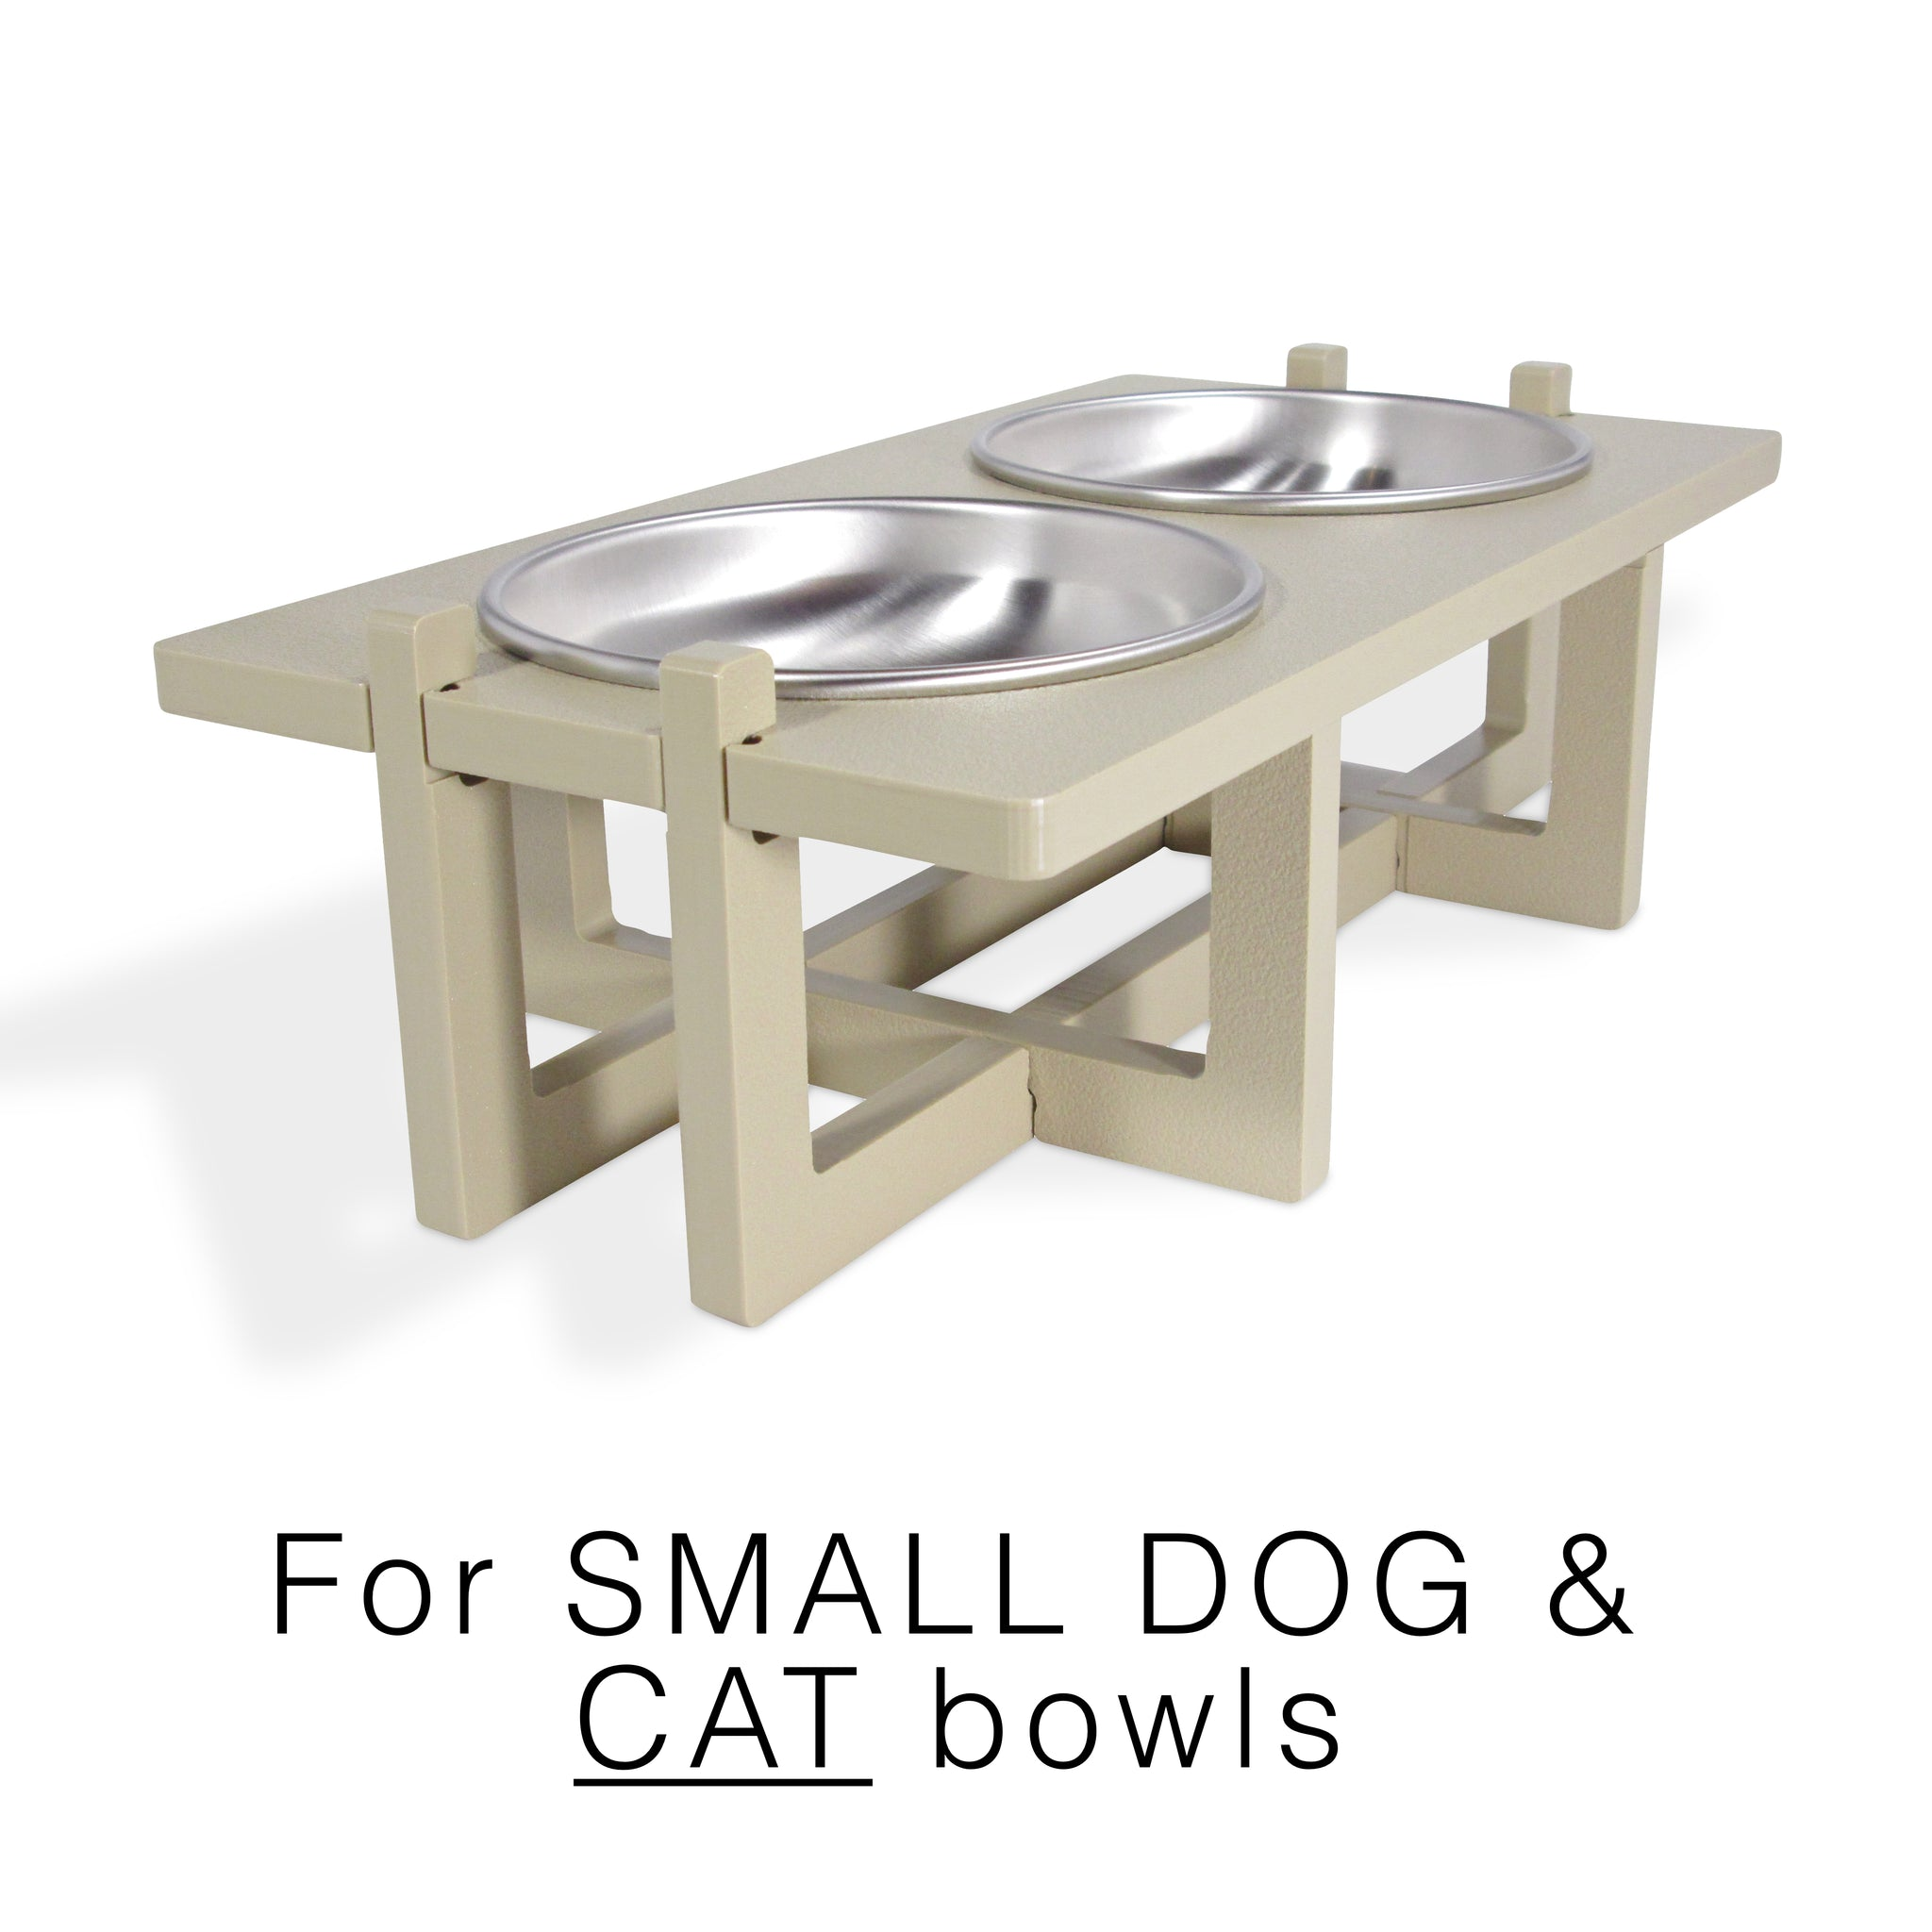 cat single jumbo fehr raised feeder tall pet dish elevated dogs dog products bowl bowls background two ozarks wording stand white